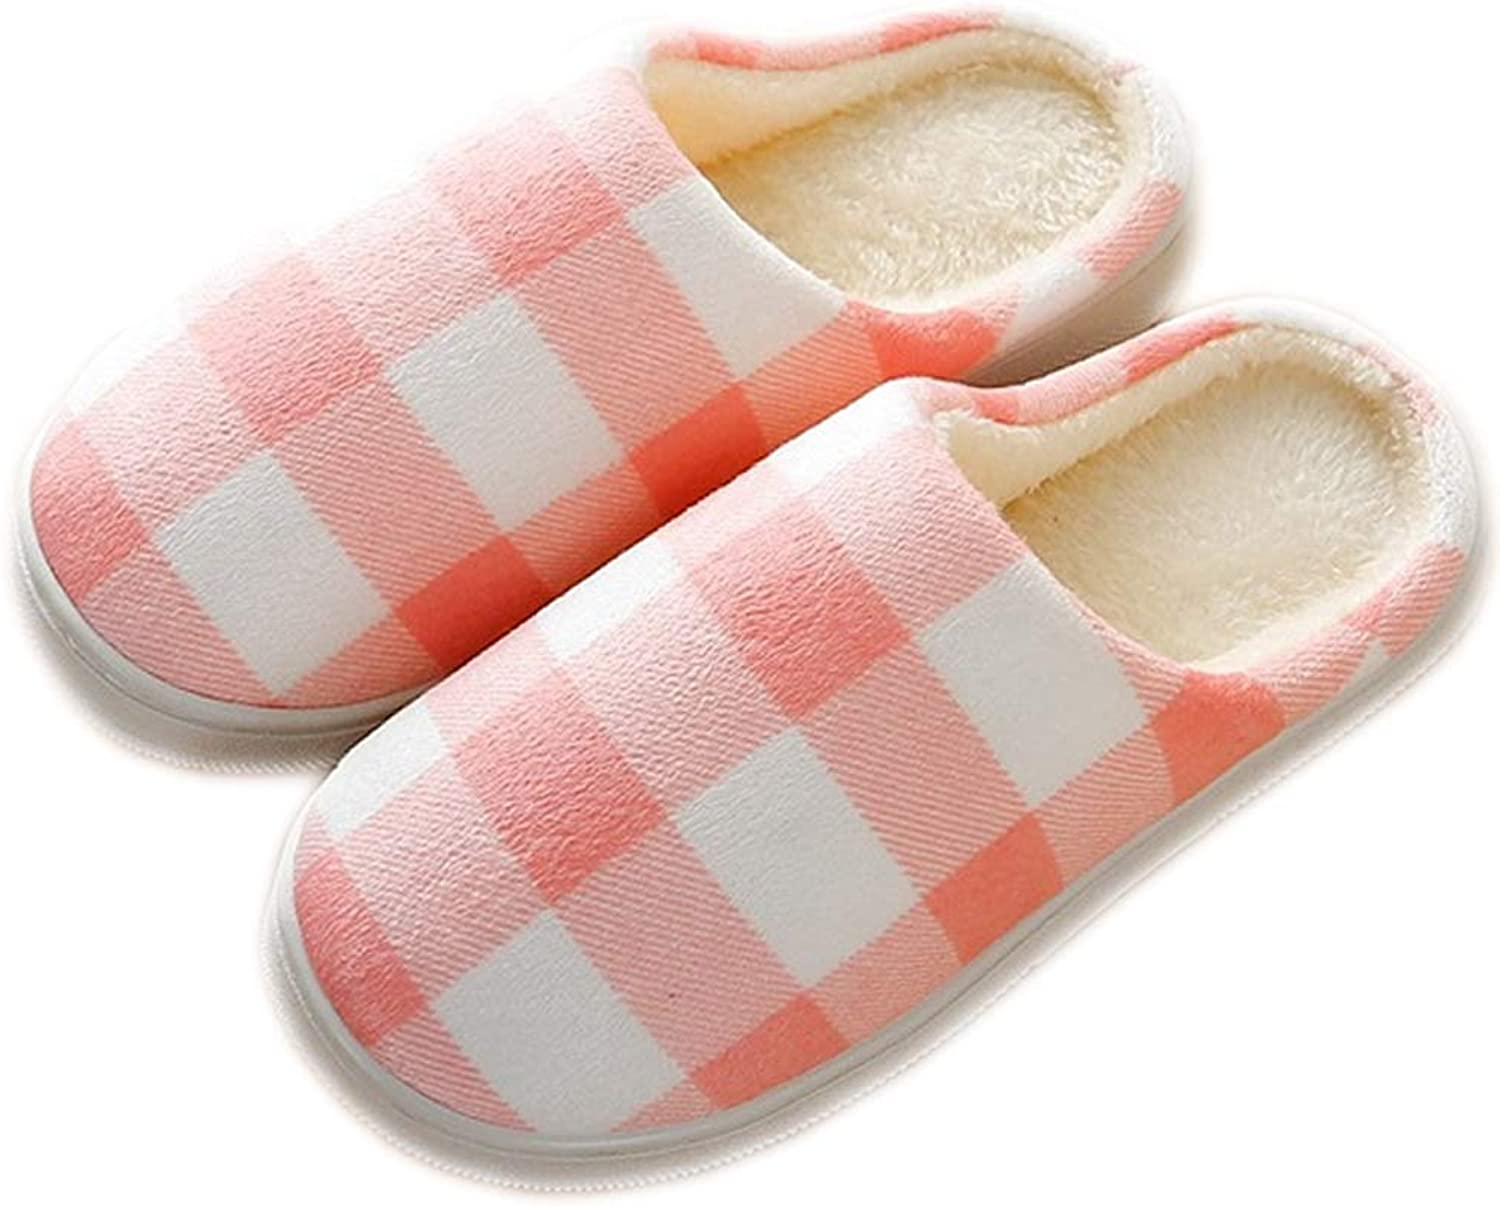 QHero House shoes Women's Men's Warm Plaid Slippers Cotton Home shoes Comfortable Fleece Memory Foam Plush Lining Slip-on Cozy Clog House shoes Indoor & Outdoor